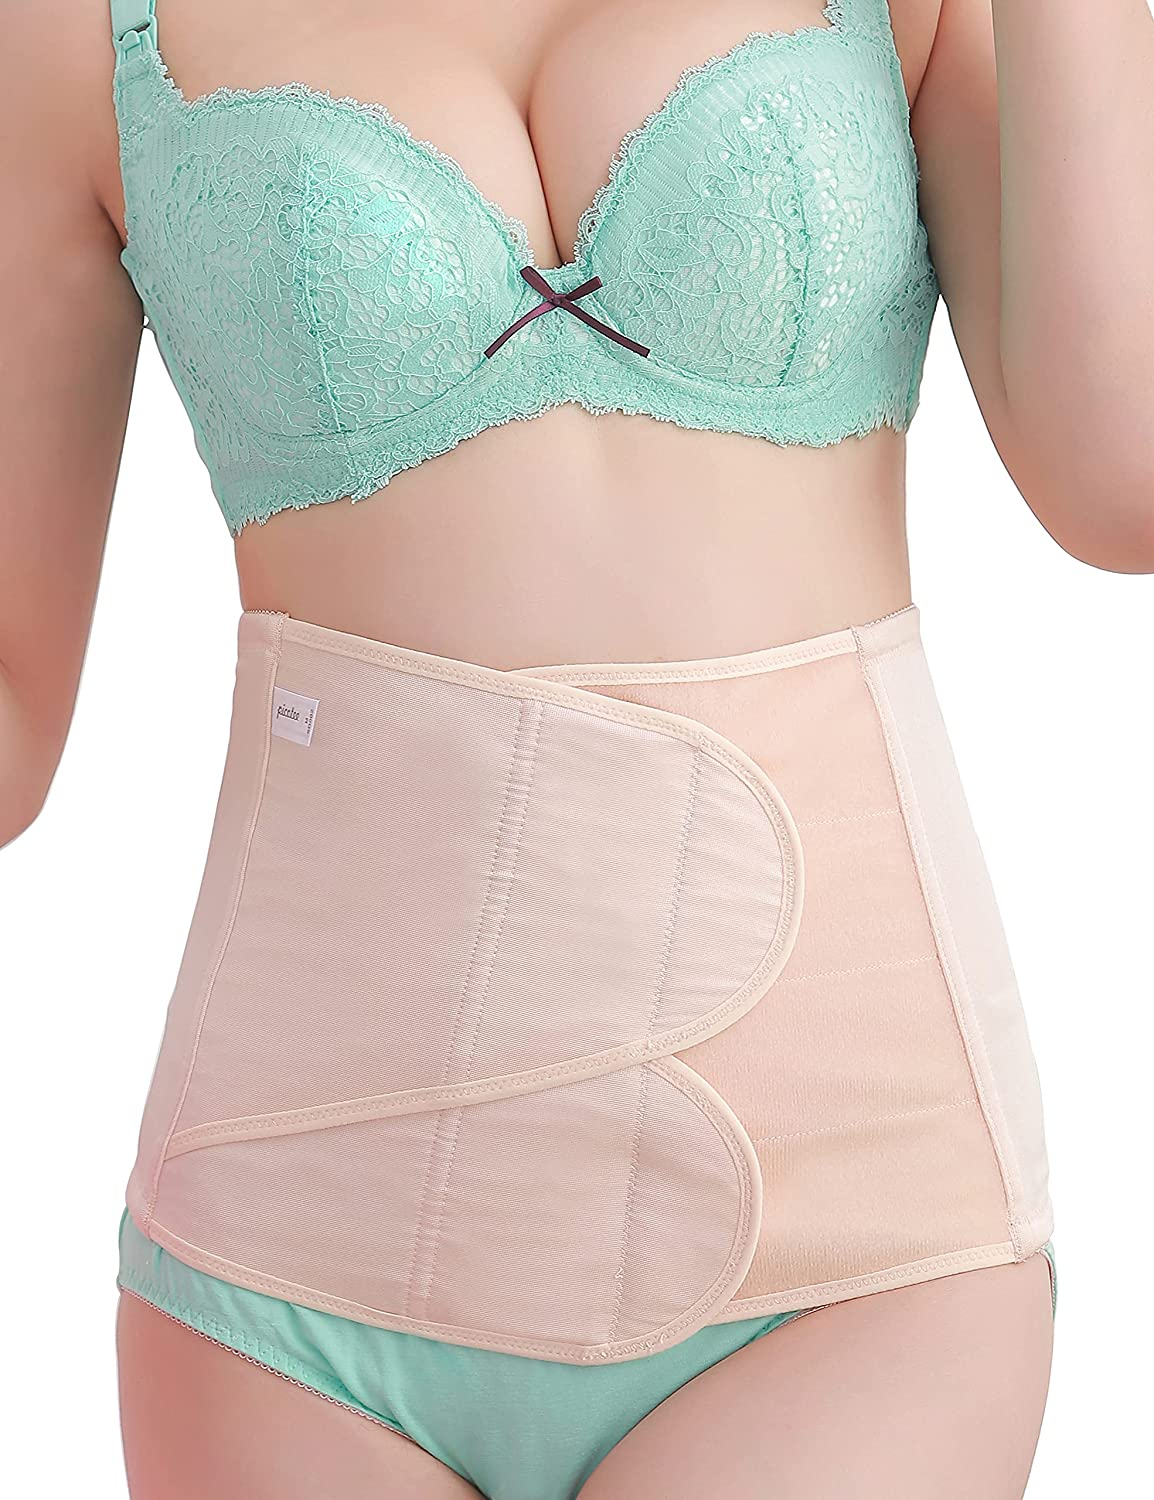 Pictures girdle What is